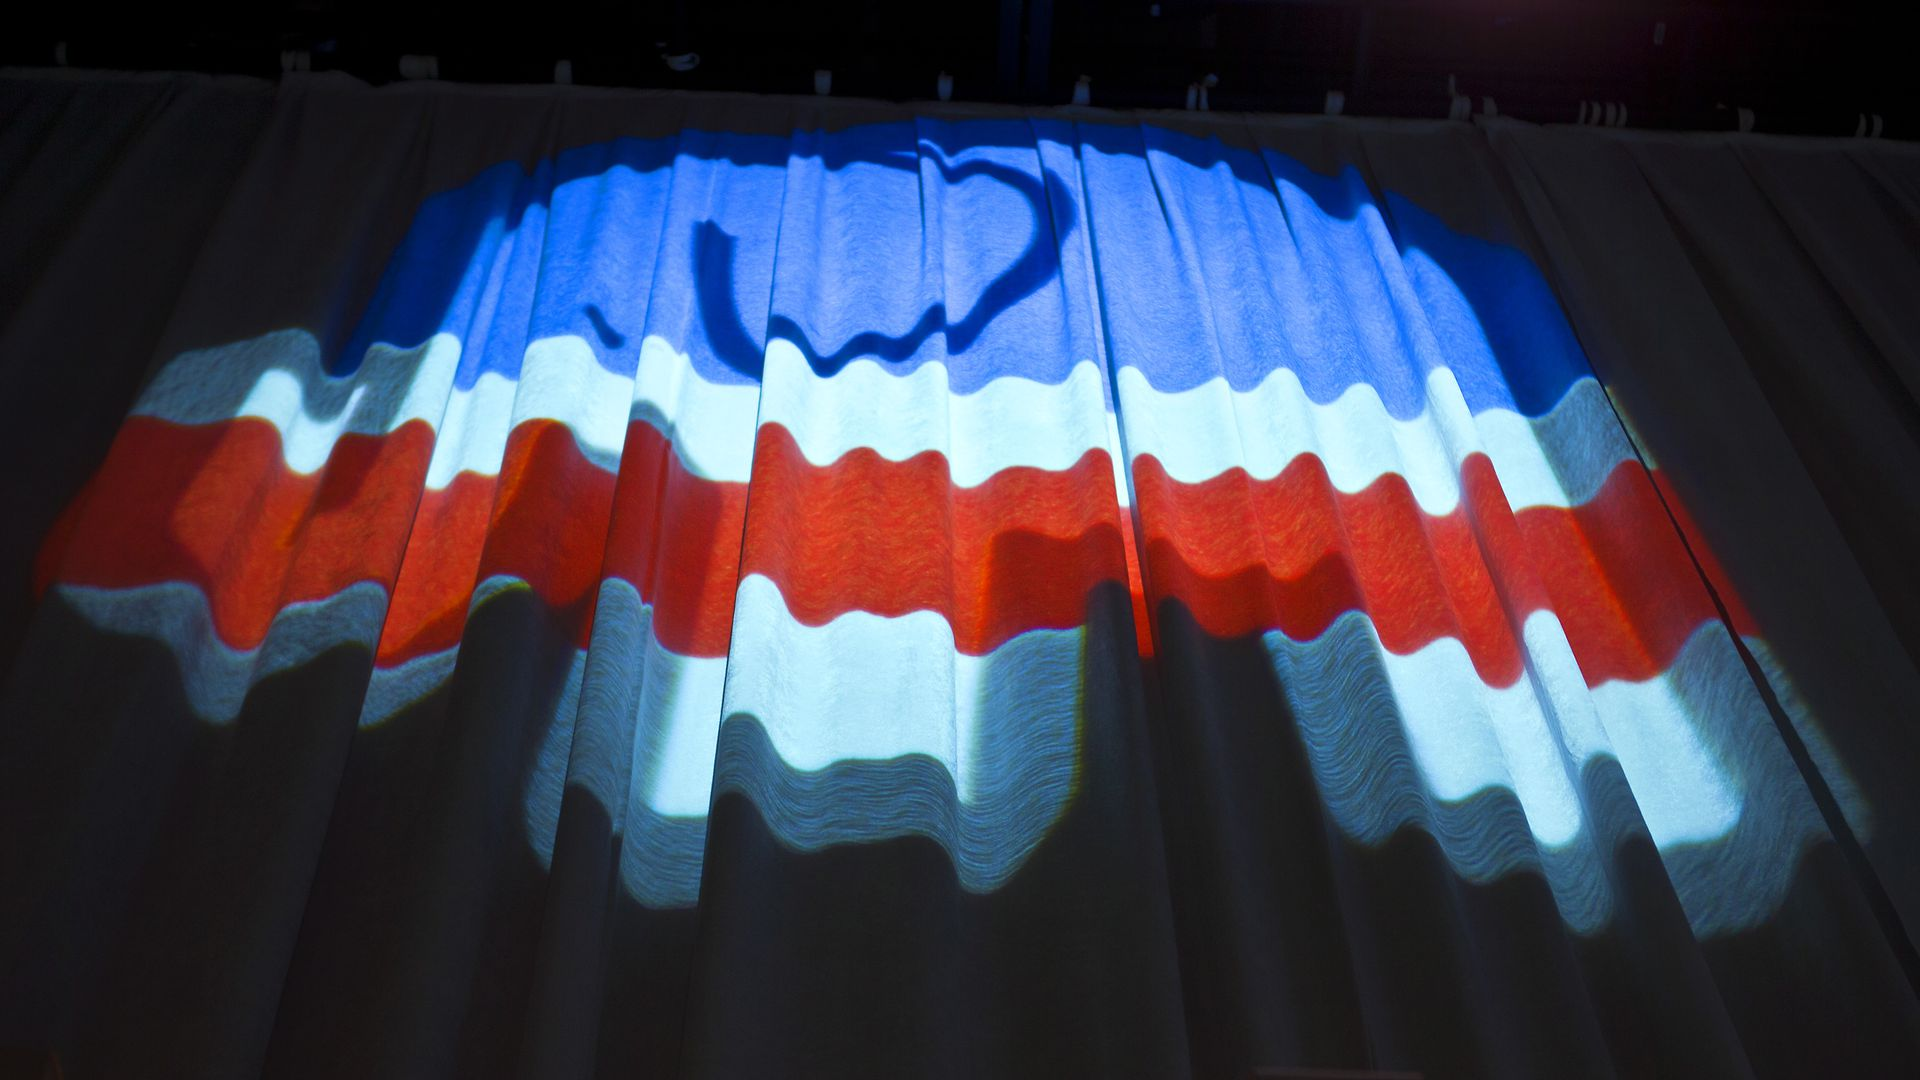 Lights reflected on a curtain reveal the shape of the GOP elephant